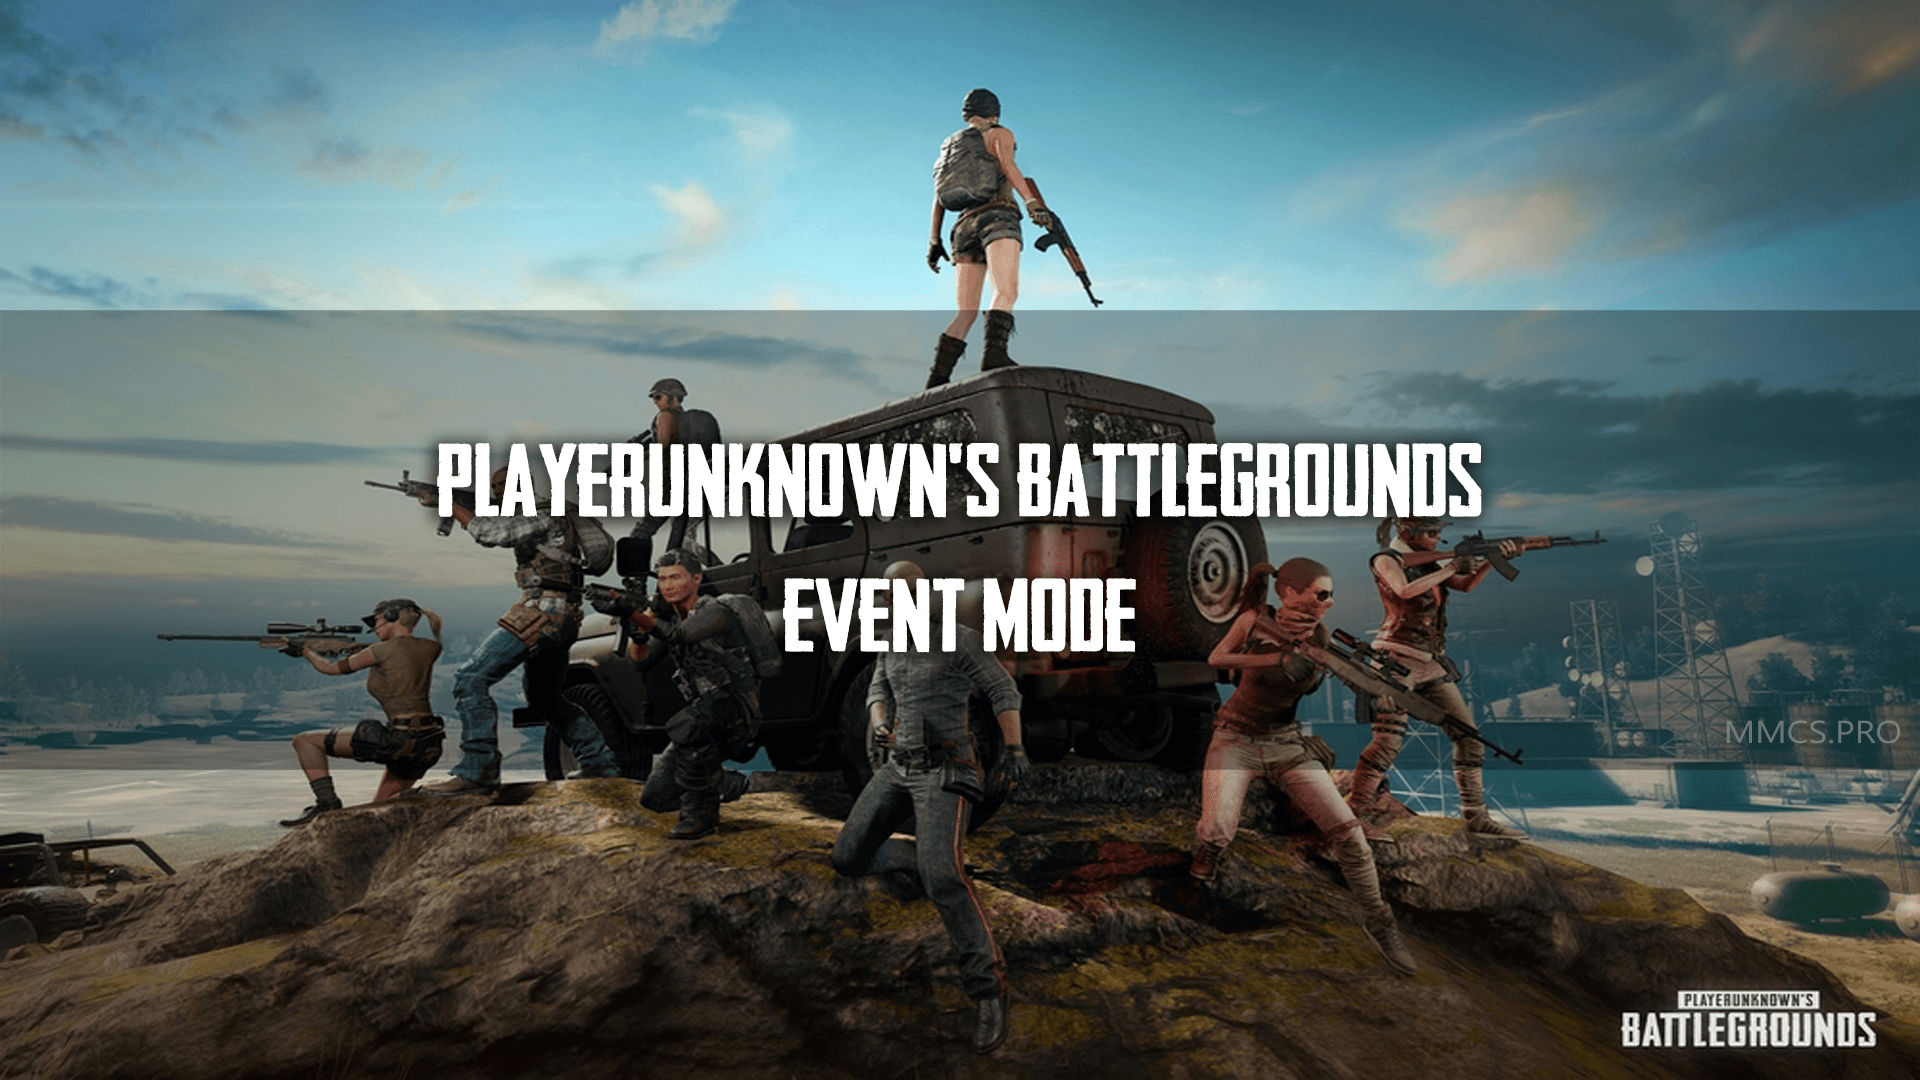 https://mmcs.pro/pubg-rezhim-sobytij-event-mode/